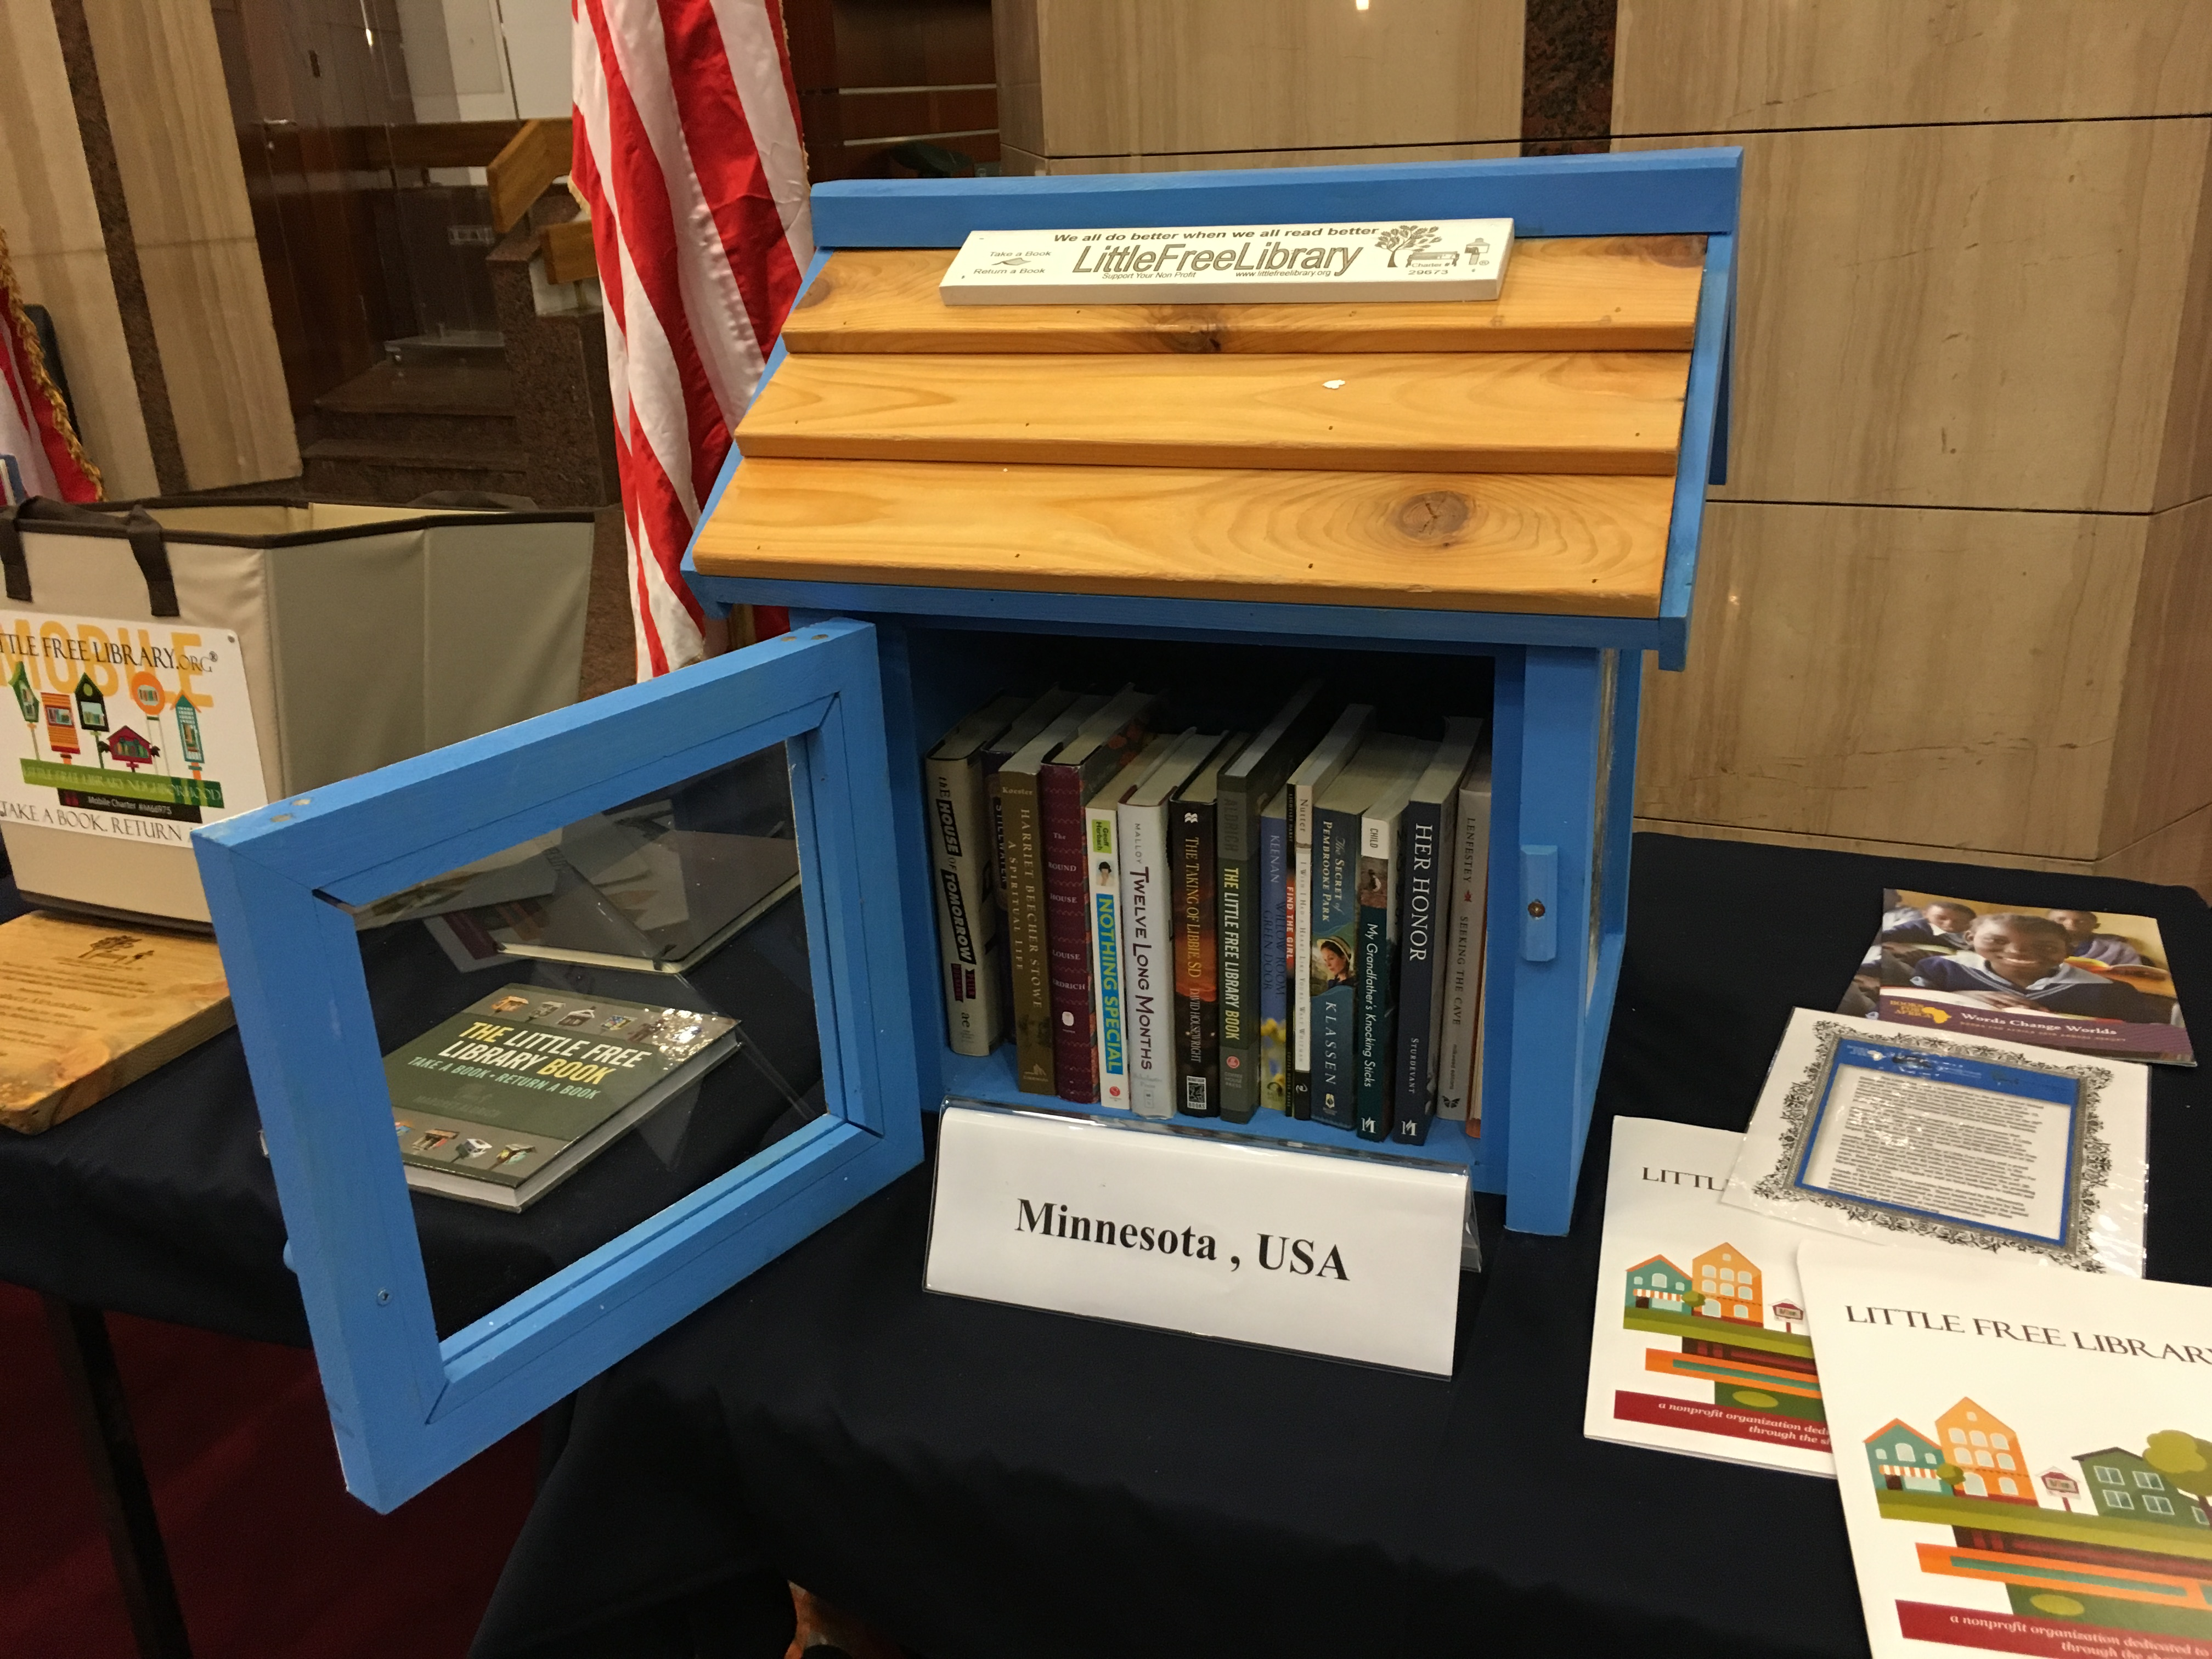 we are humbled to have a little free library book exchange in the worlds most famous library said todd h bol co founder and executive director of - Free Book Pictures